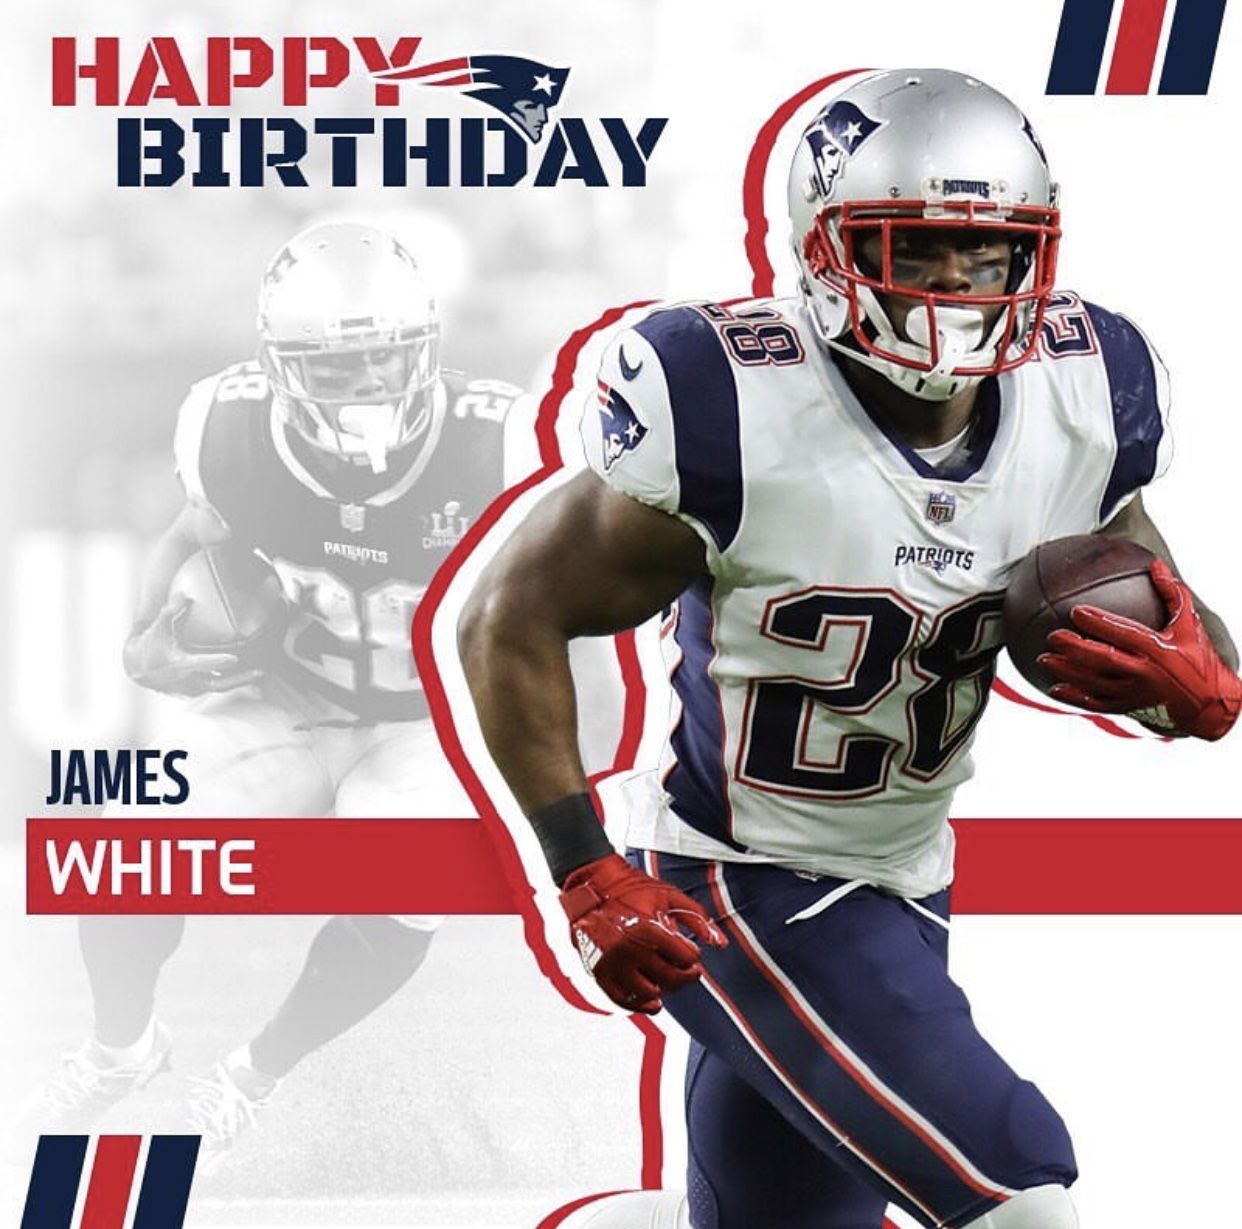 Happy Birthday James White Rb Sweetfeet Haveaday New England Patriots Patriots James White